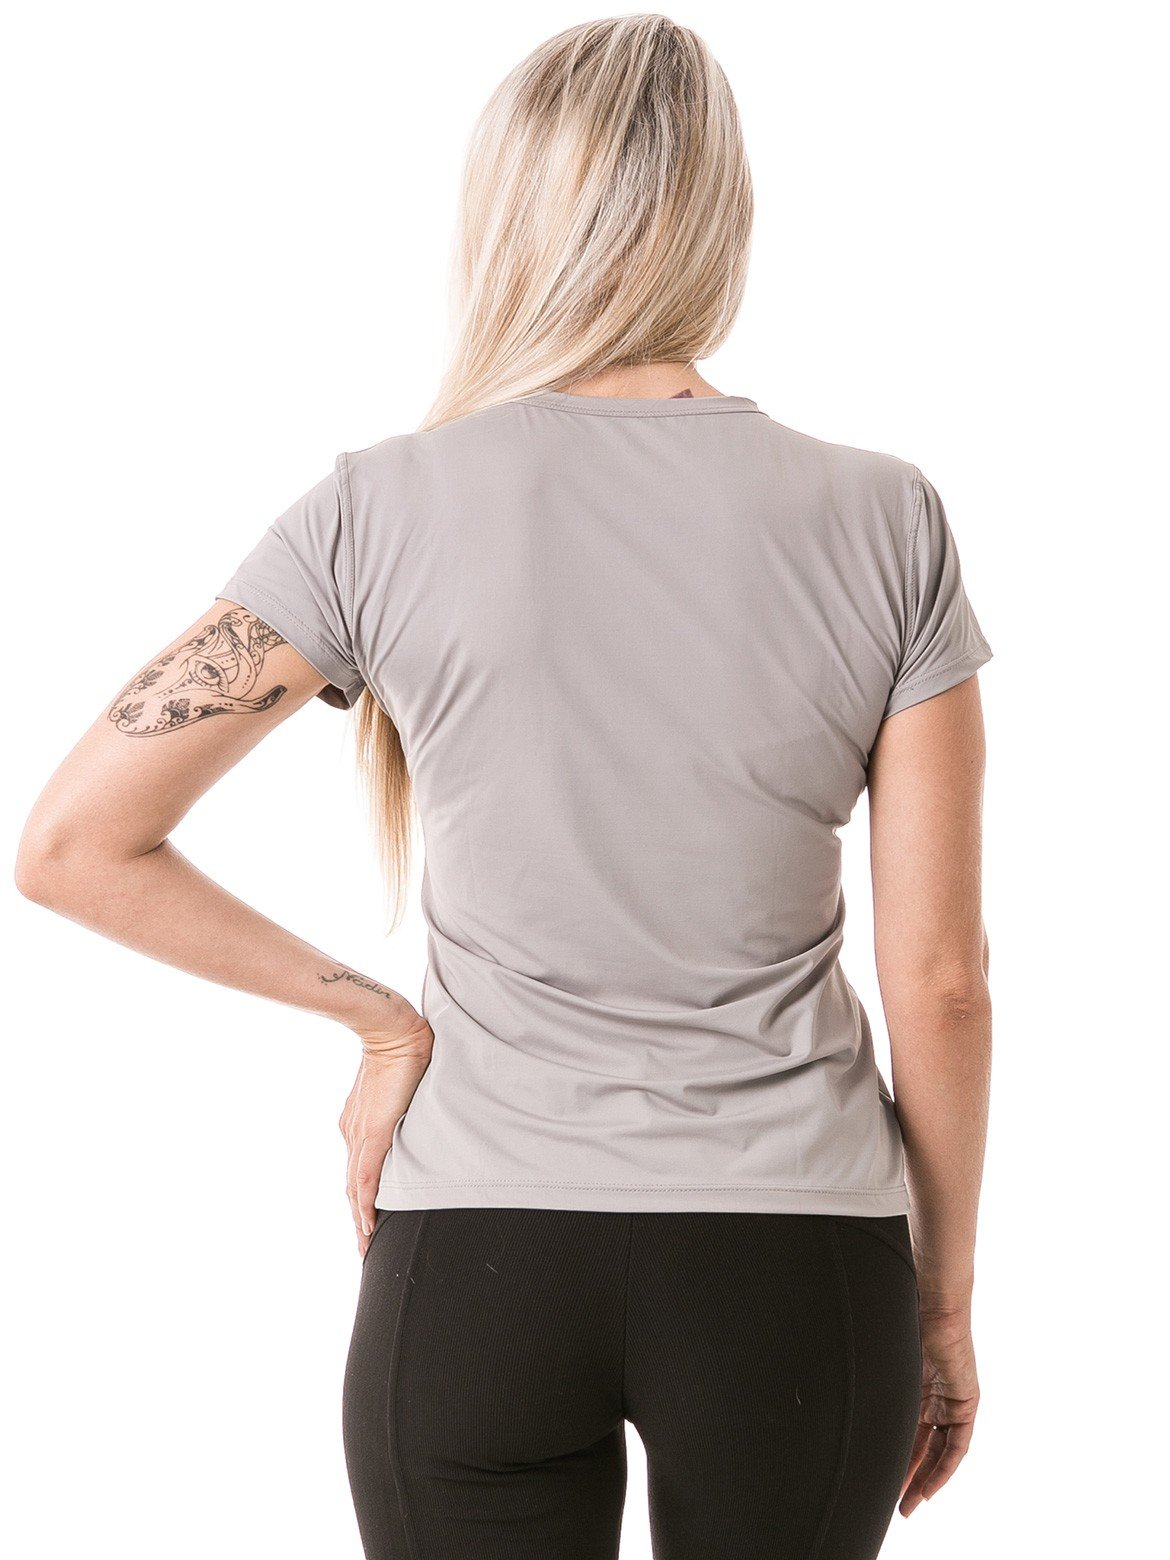 feminina t shirt curta ice cinza costa b